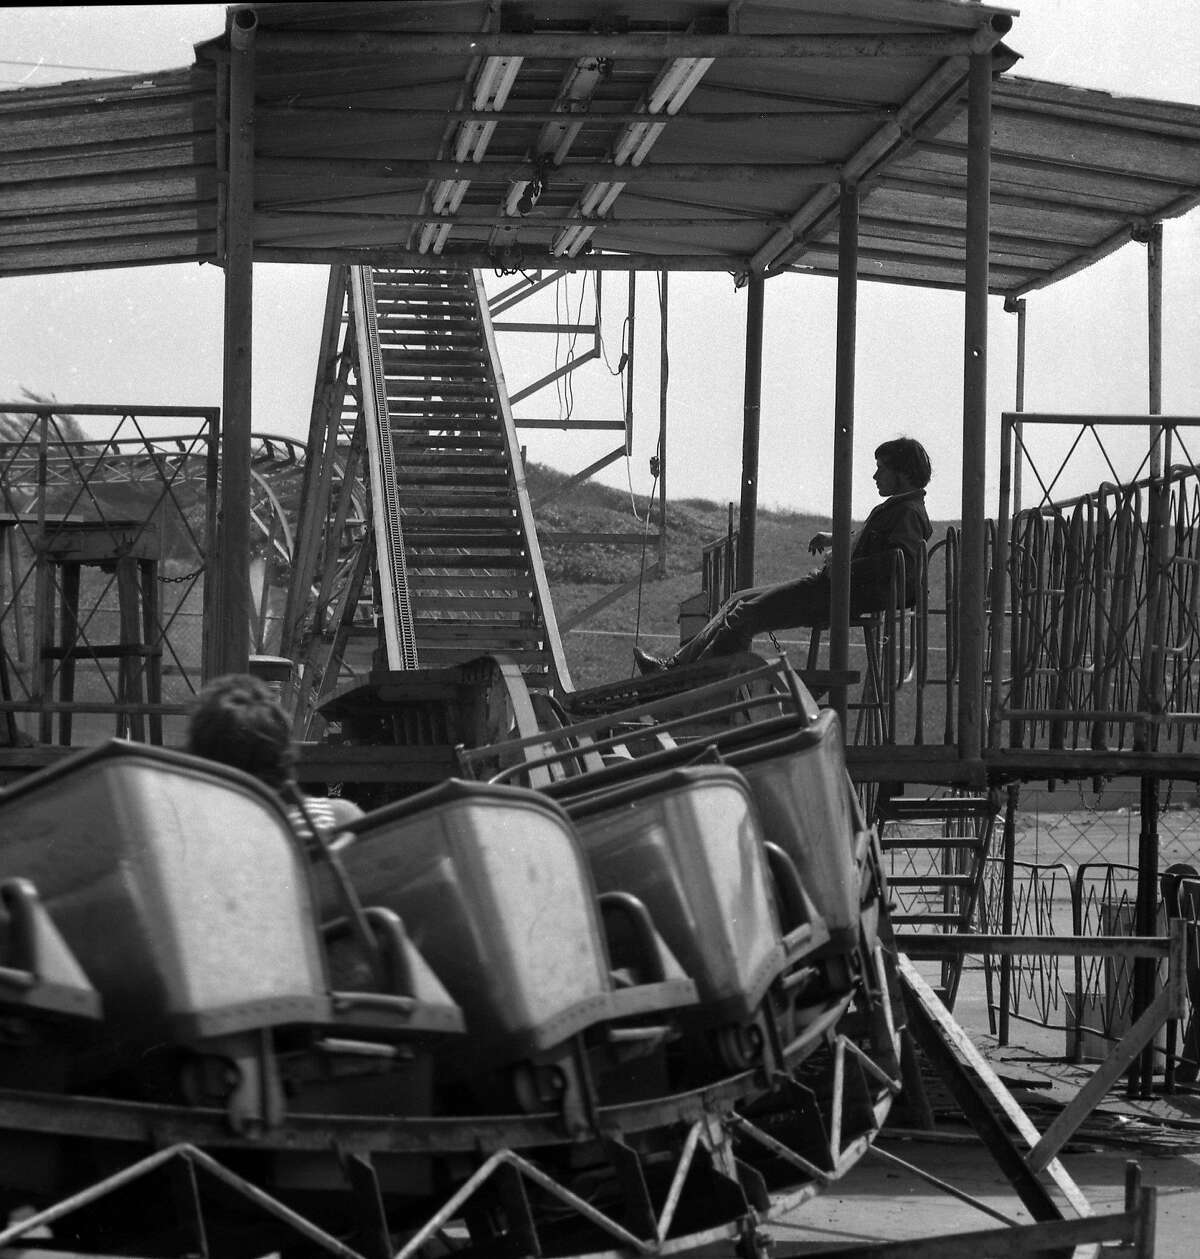 Photos taken on Aug. 17, 1972, the last day of operation at Playland at the Beach. The amusement park in San Francisco was demolished the next month.